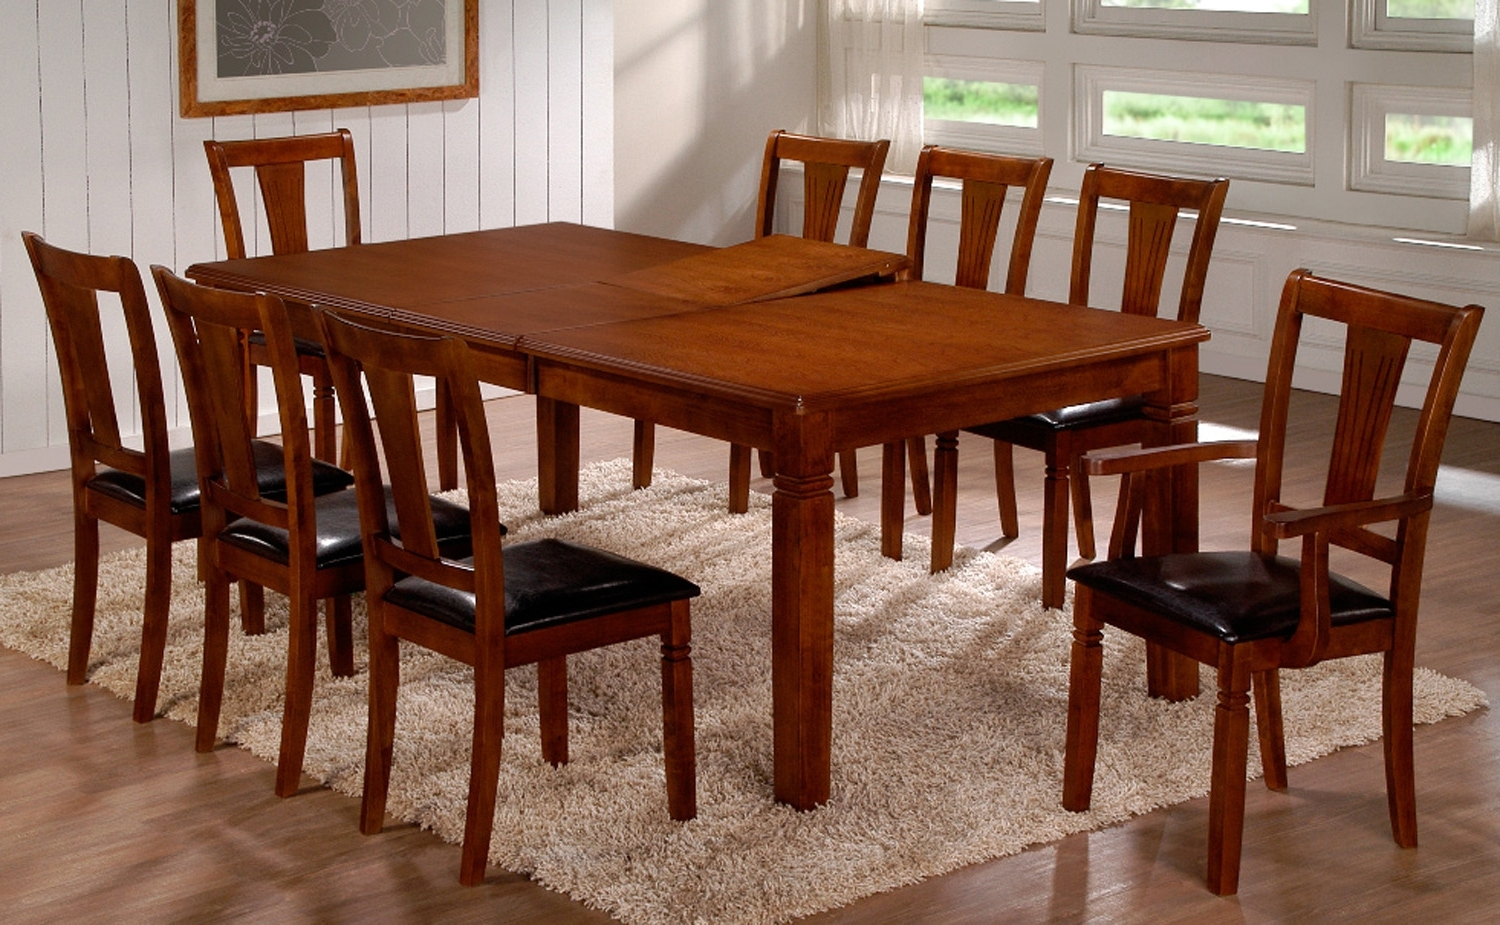 Trendy Dining Tables For 8 With Regard To 44 8 Seat Dining Room Table Sets, Thomasville Dining Room Table (View 5 of 25)